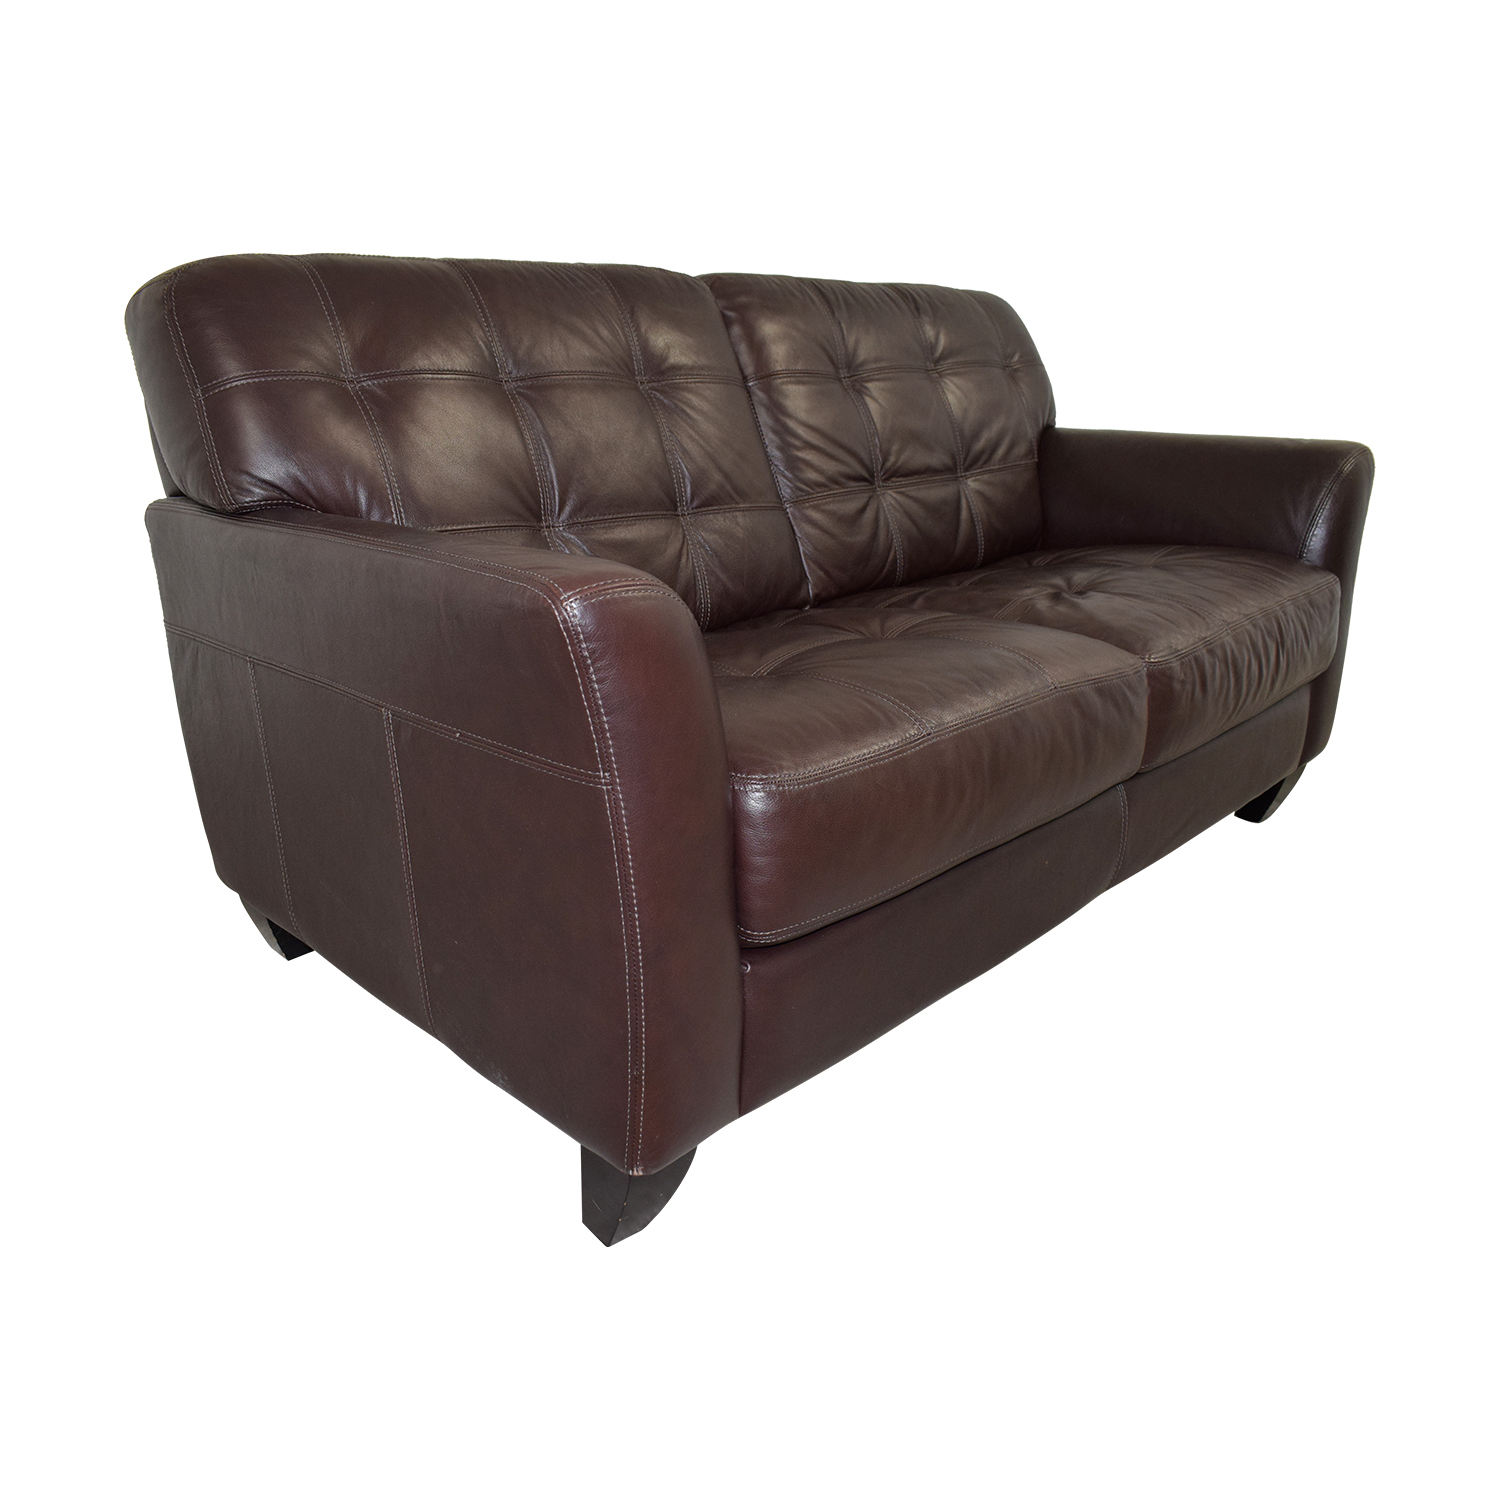 Macy's Macy's Kaleb Loveseat coupon